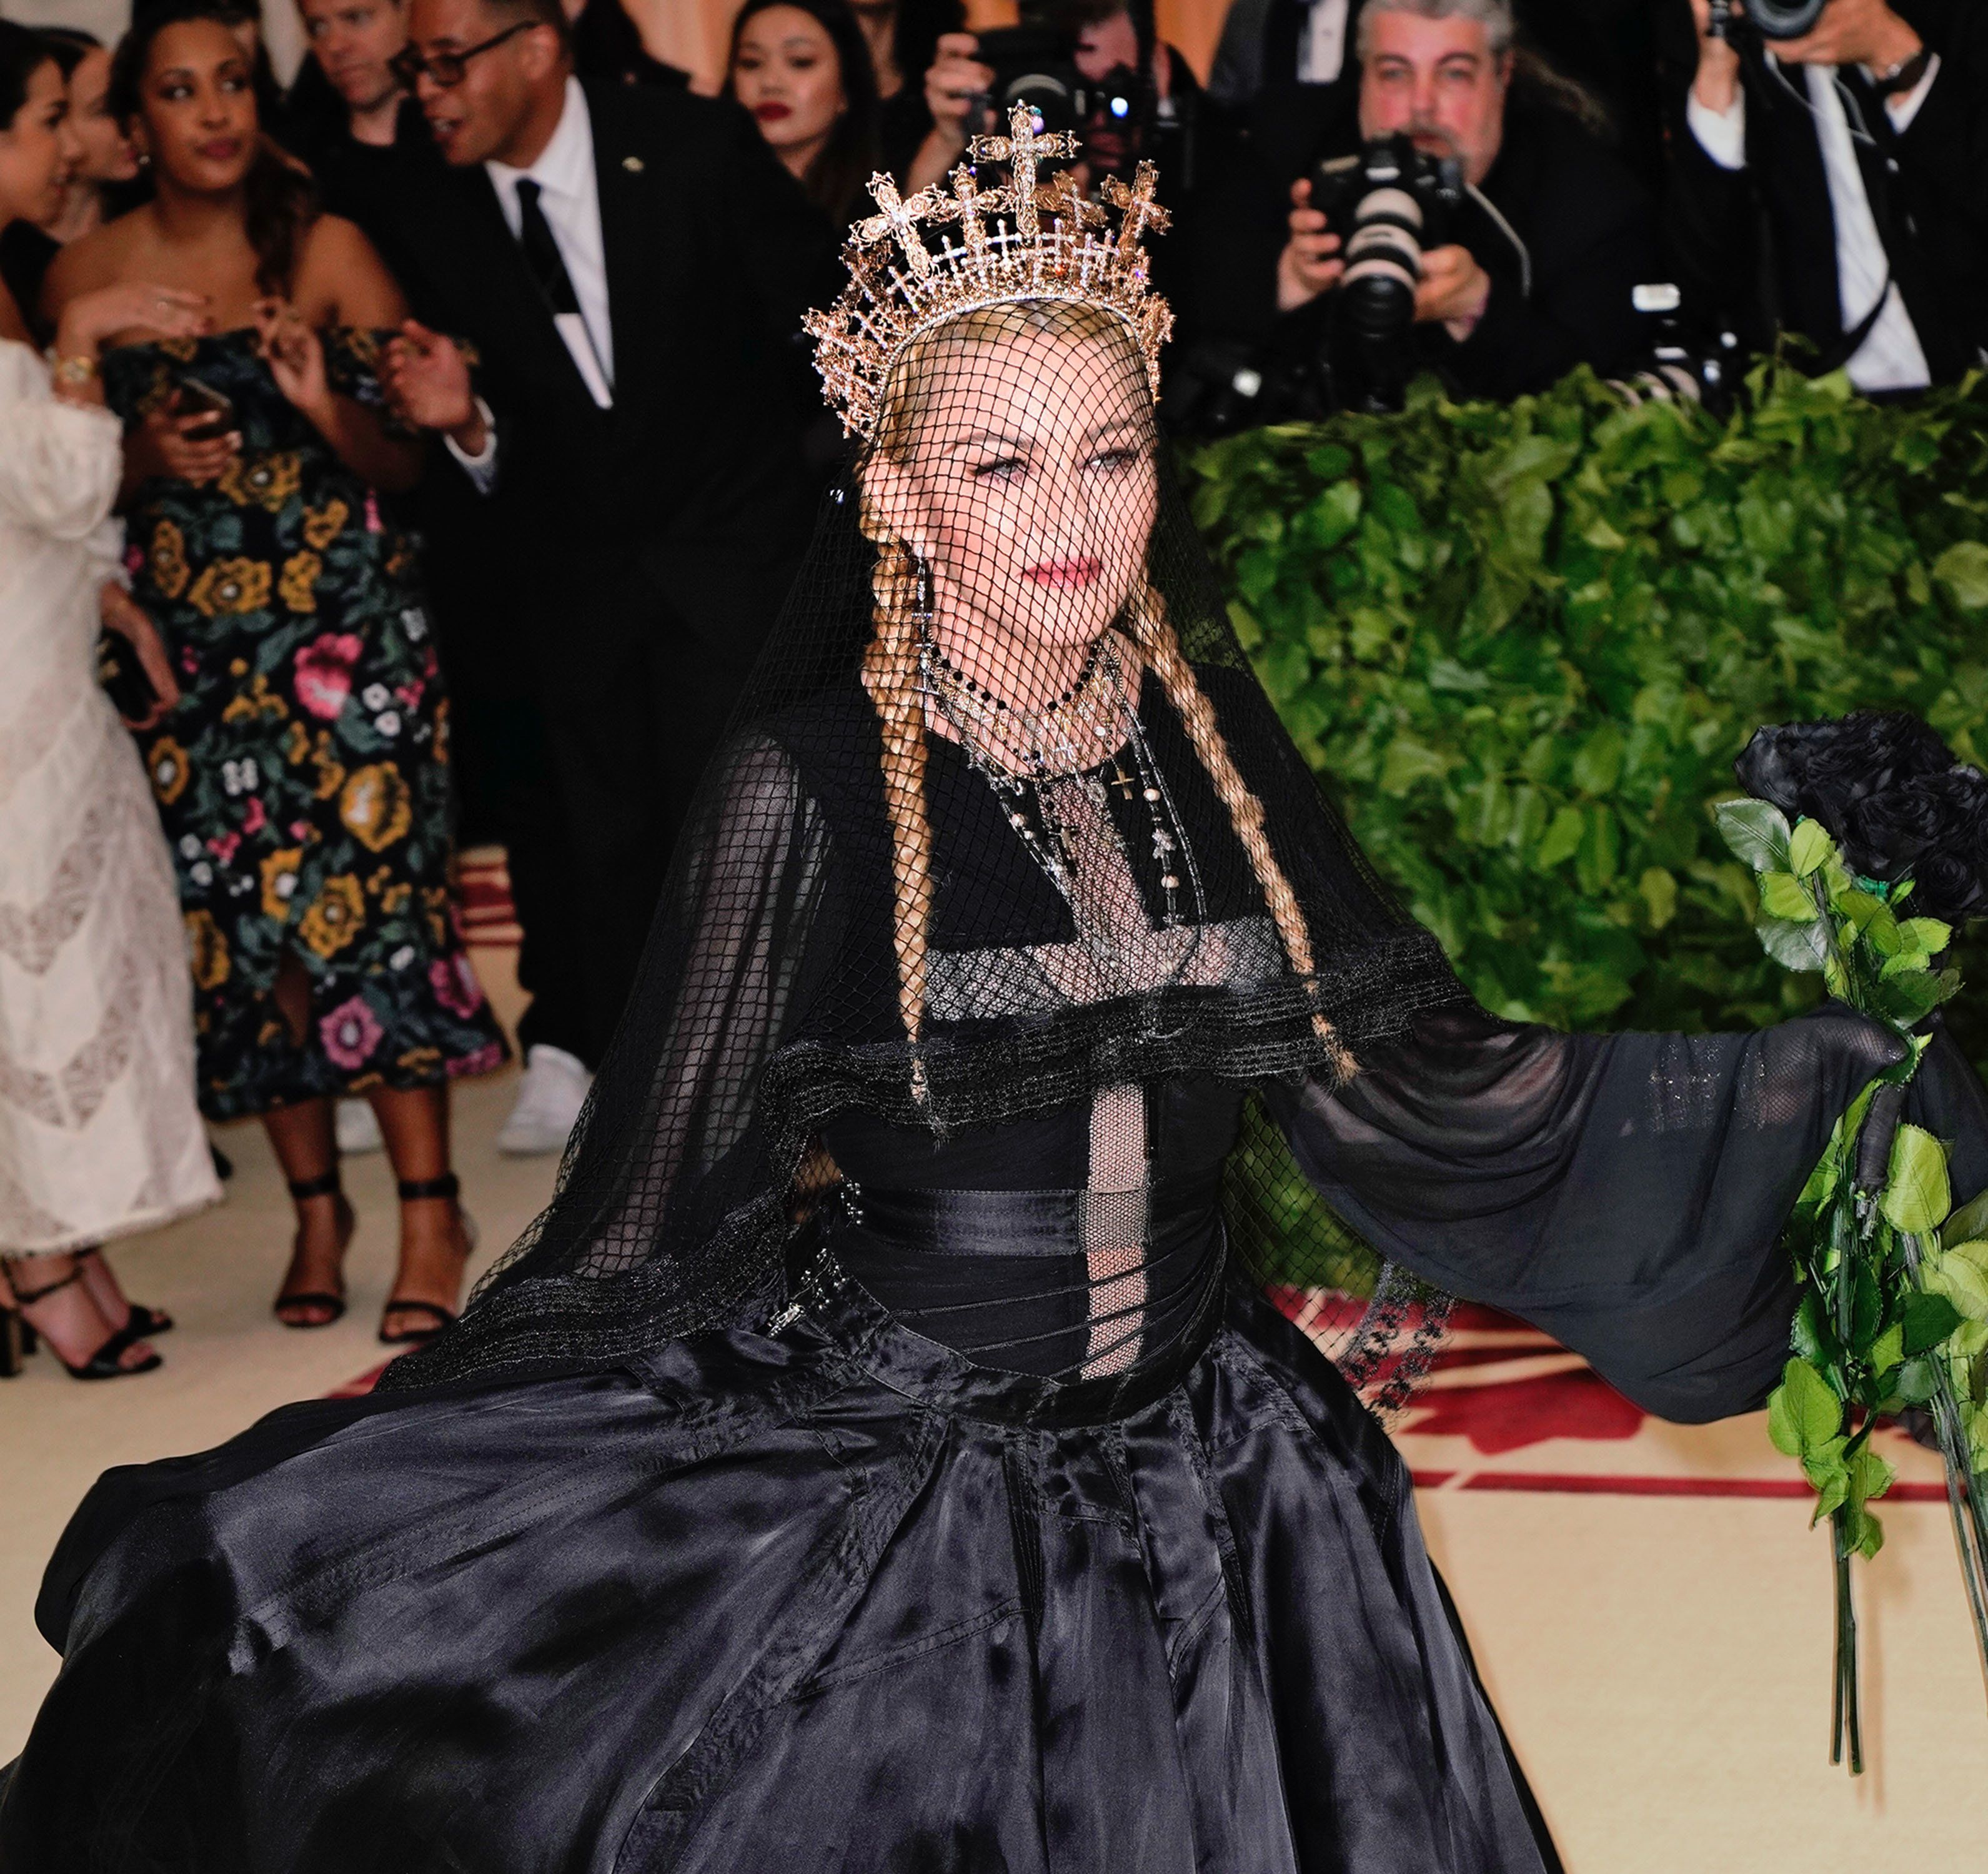 """In recent years,&nbsp;Madonna&nbsp;has become one of the annual Met Gala <a href=""""https://www.wmagazine.com/gallery/madonna-m"""